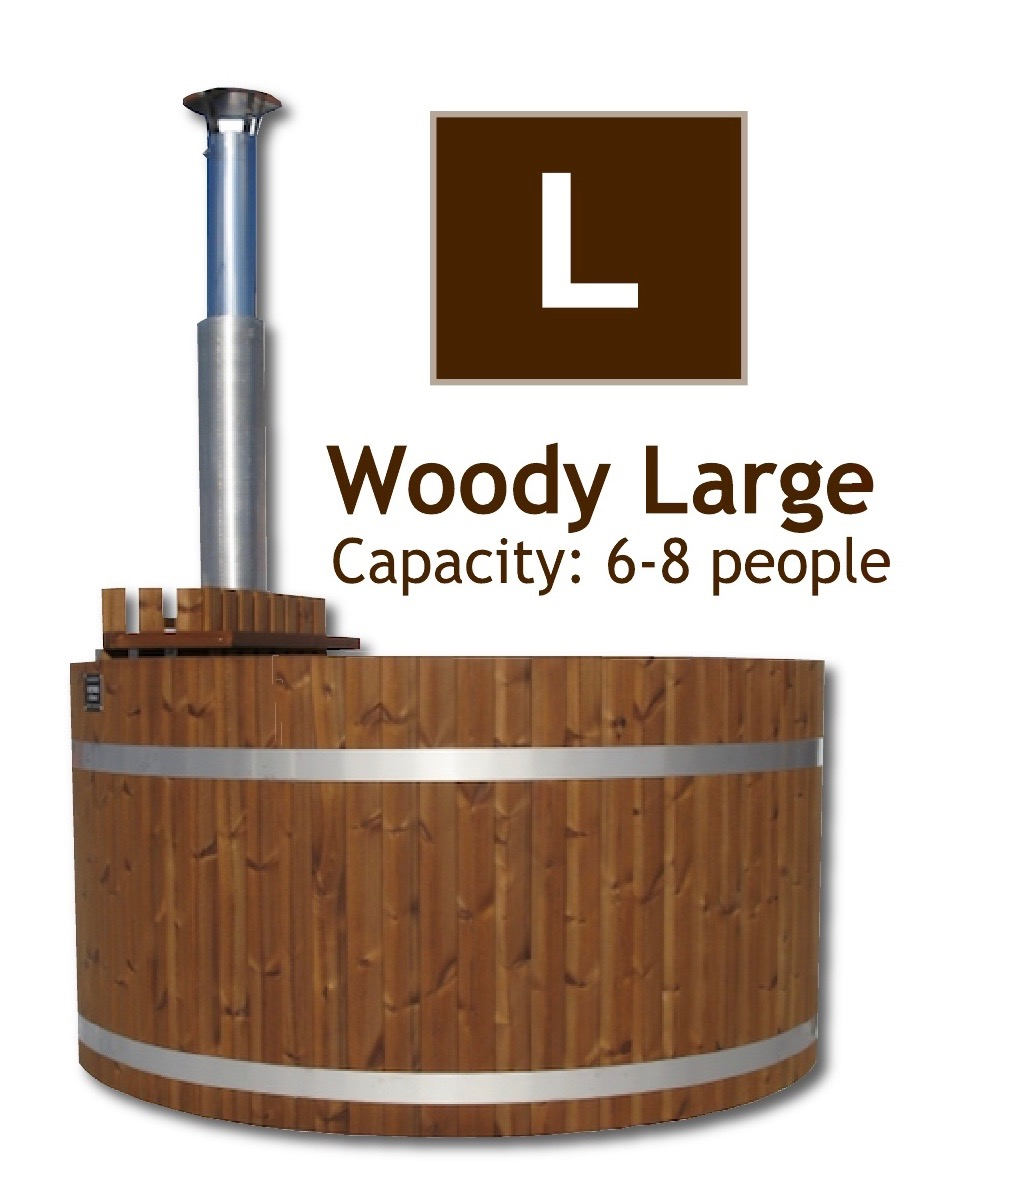 The Woody L Large wood fired hot tub by Kirami supplied by Wood Fire Water in the UK